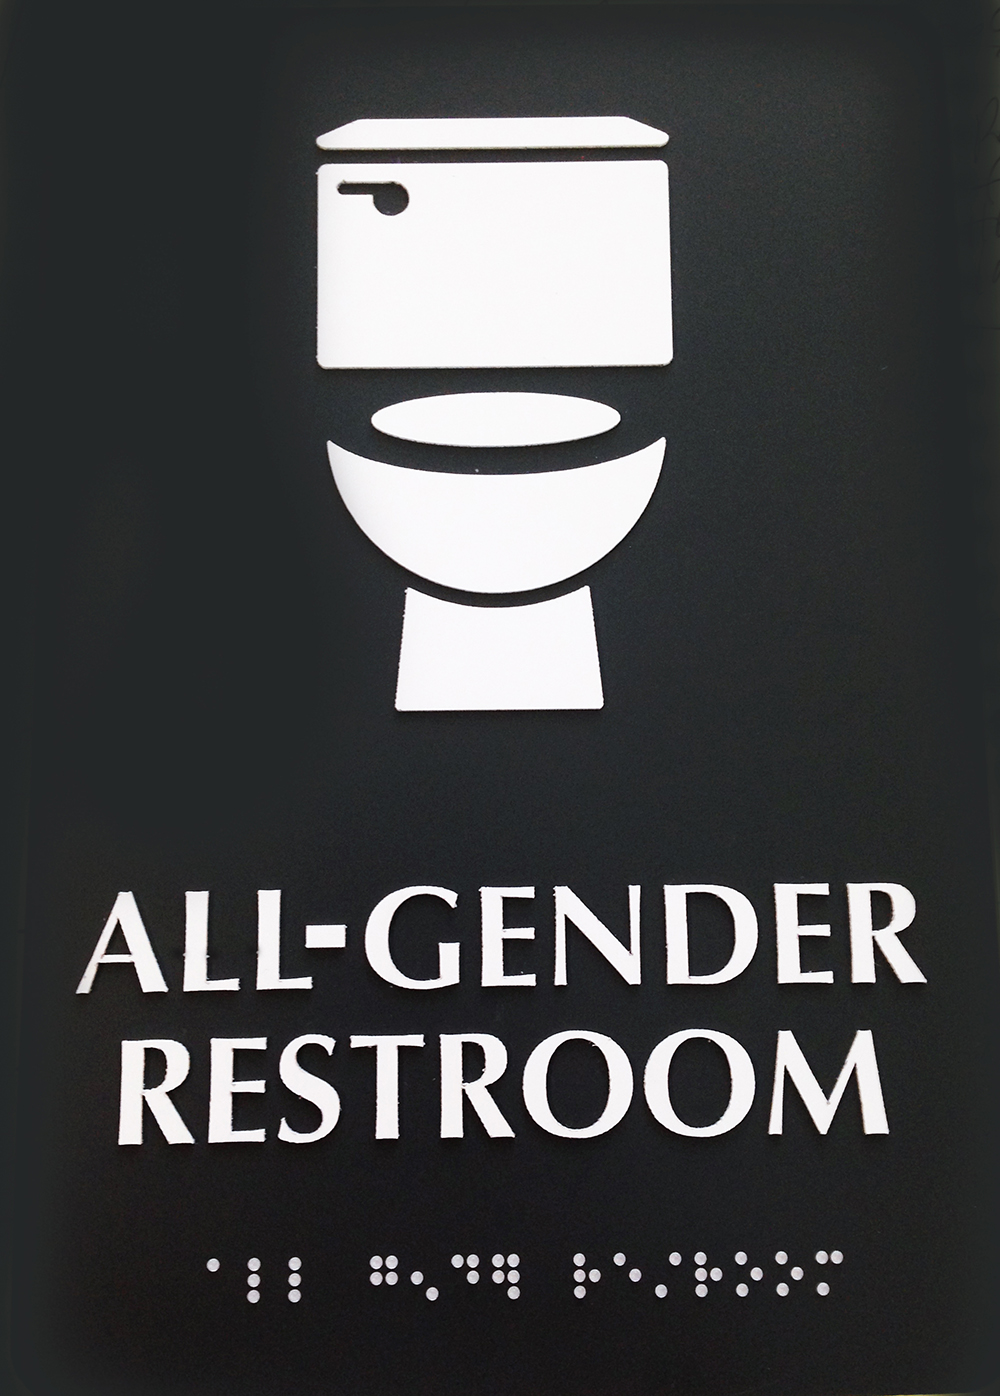 AllGender Bathroom Signs  The Laurel of Asheville